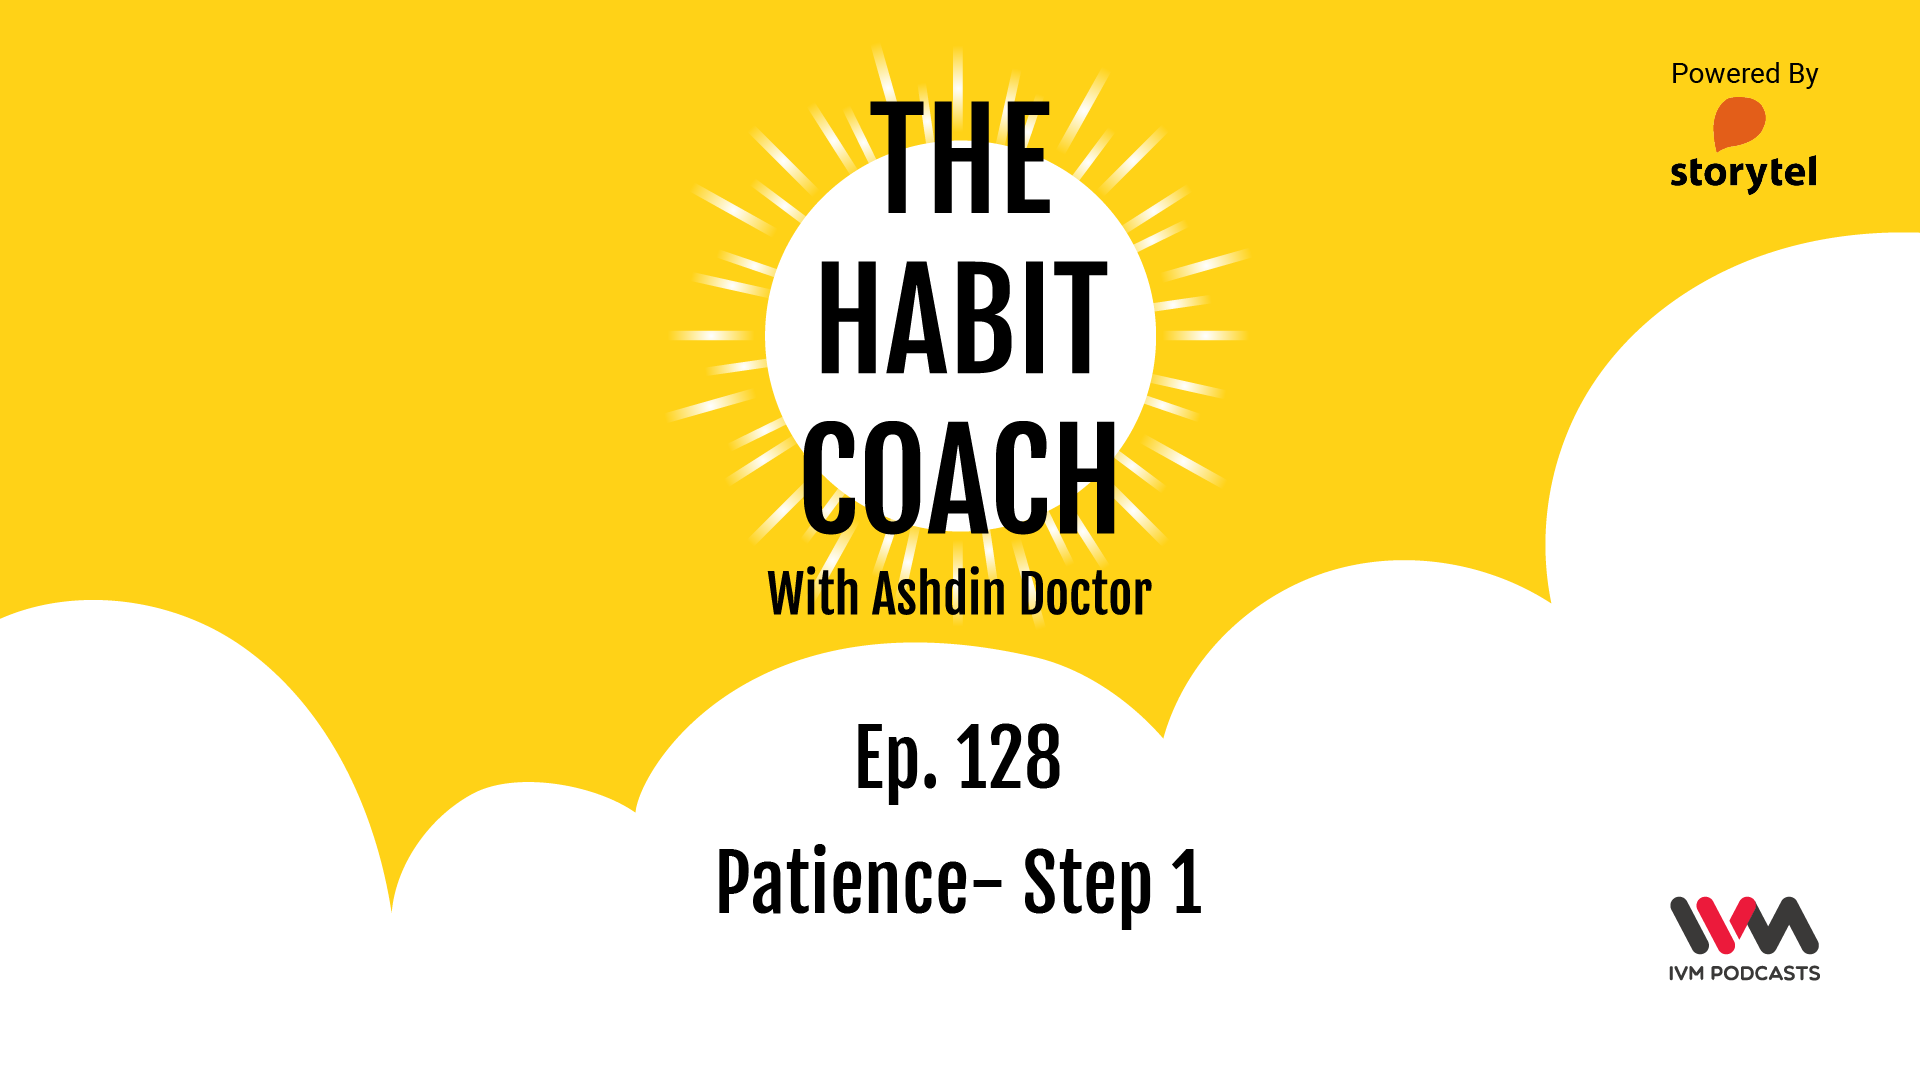 TheHabitCoachEpisode128.png